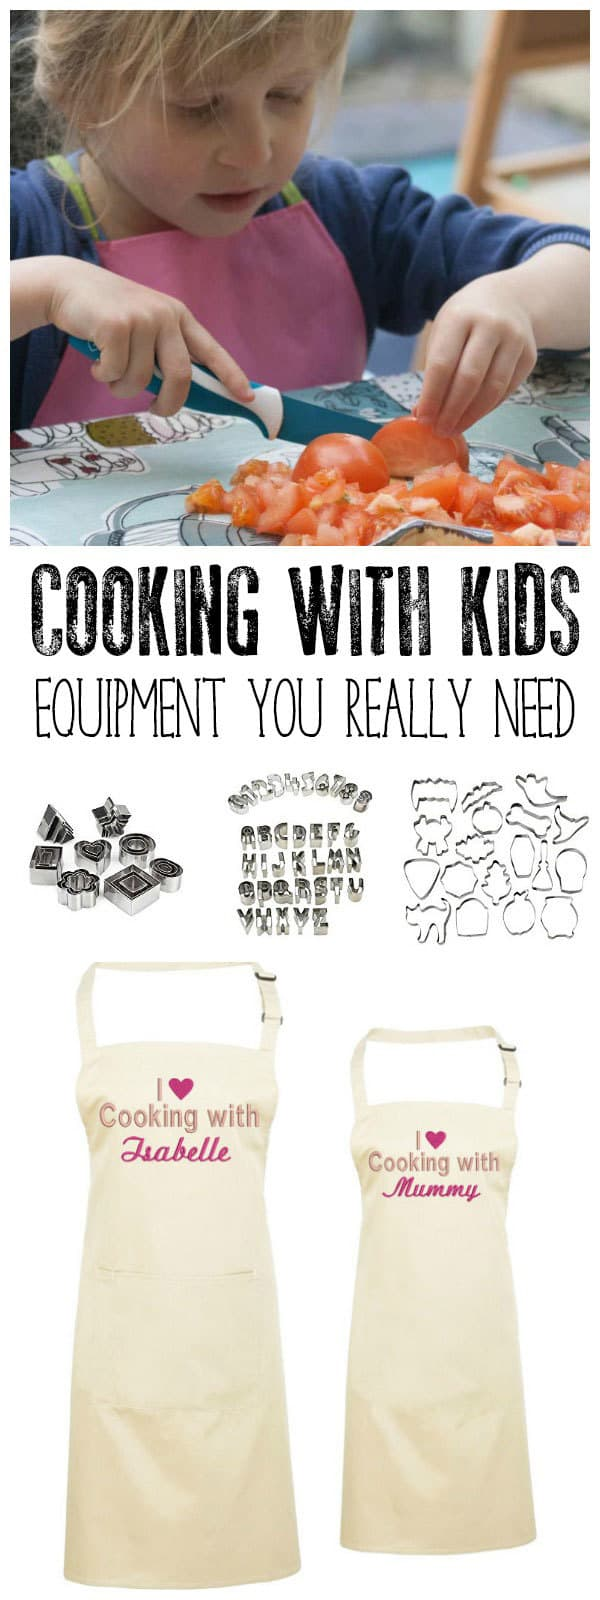 With so many gadgets and gizmos around what equipment is actually needed for cooking with kids. Find our essentials, they are nice and some little ideas that make time in the kitchen with kids a little bit easier for all.